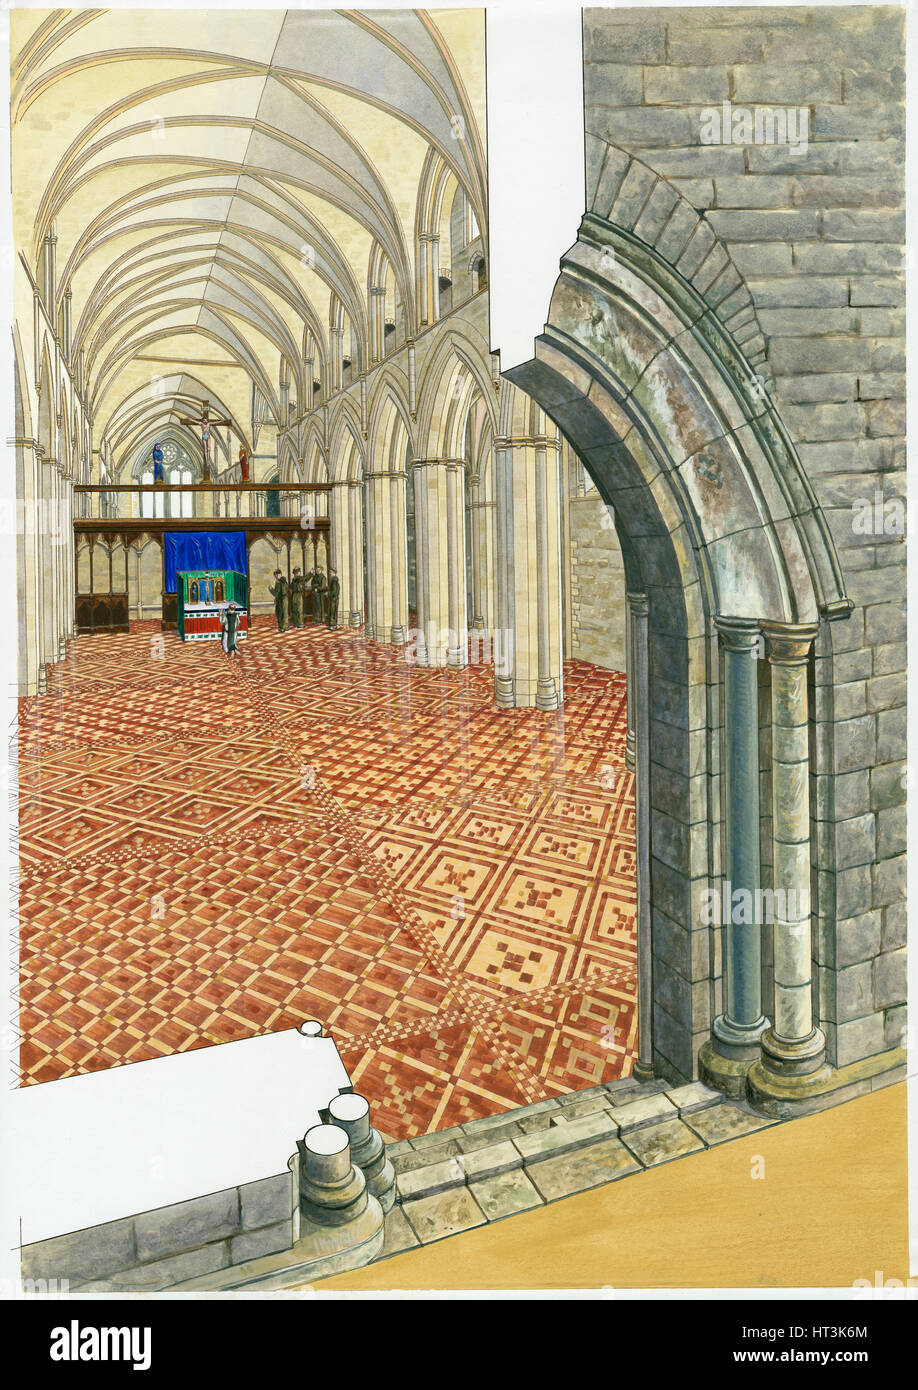 Netley Abbey, 14th century, (c1990-2010) Artist: Roger Hutchins. - Stock Image